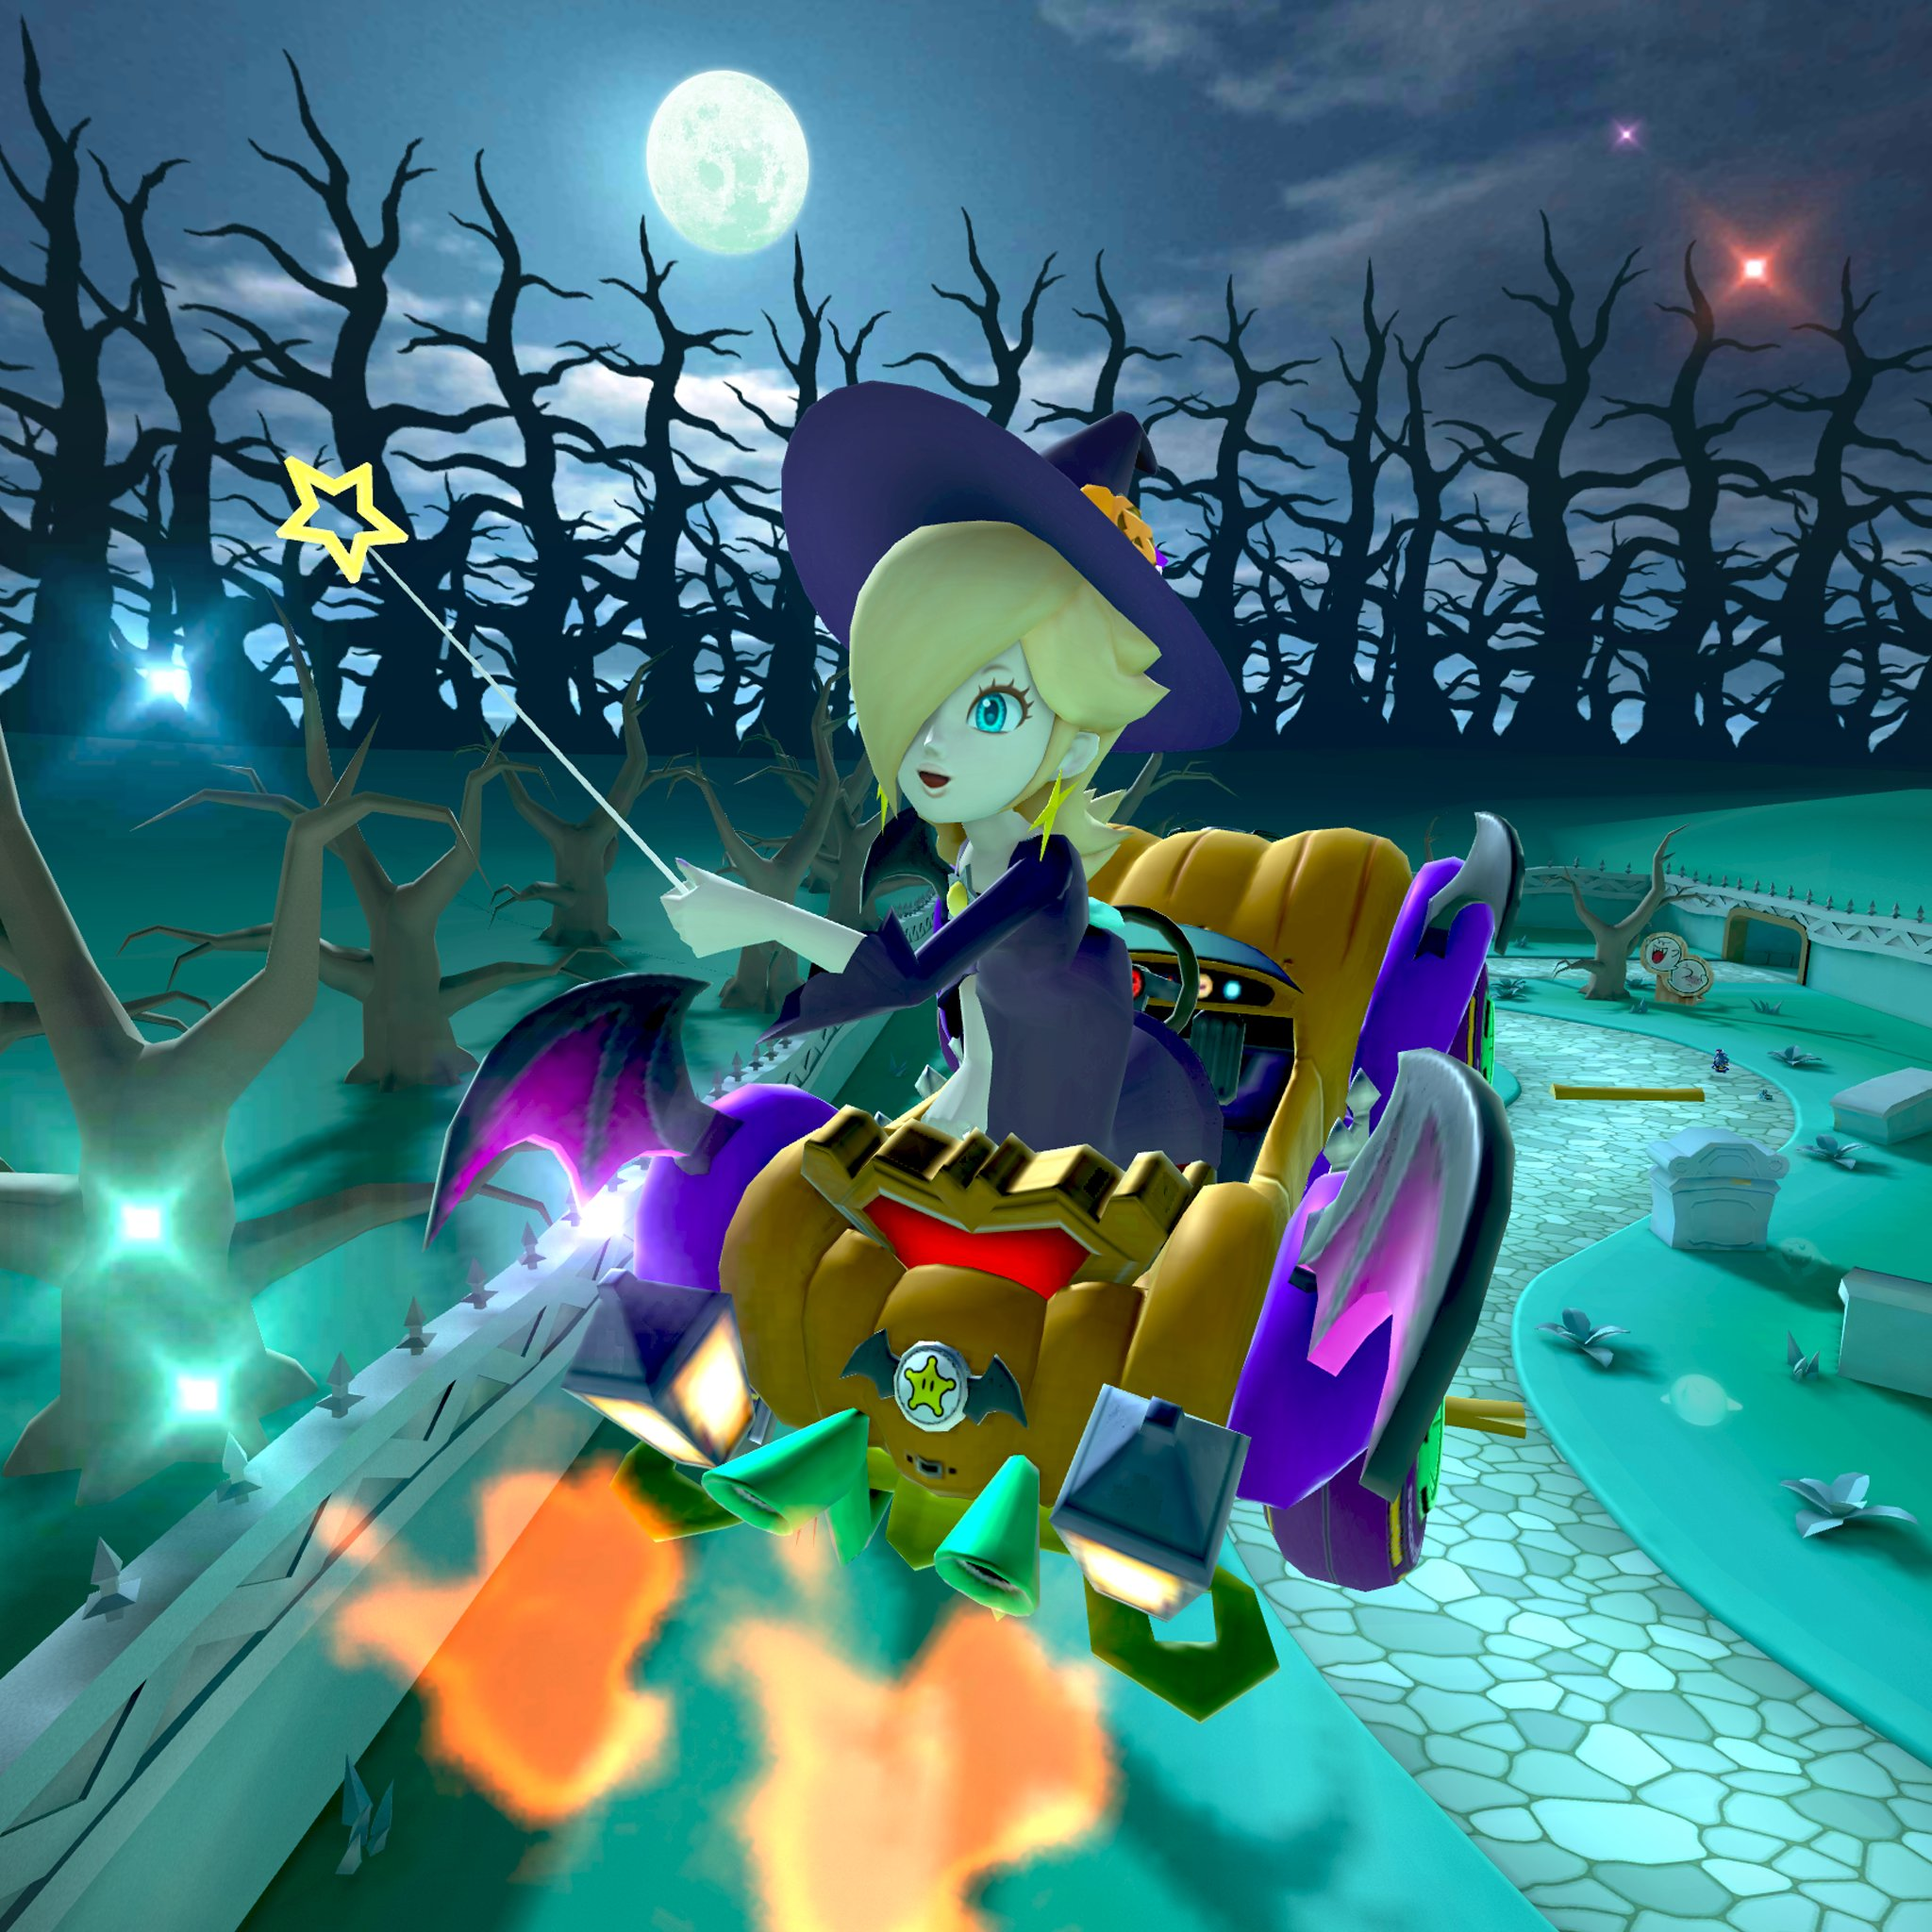 Mario Kart Tour On Twitter In The Next Tour Rosalina Is All Dressed Up For Halloween And She S Looking Even